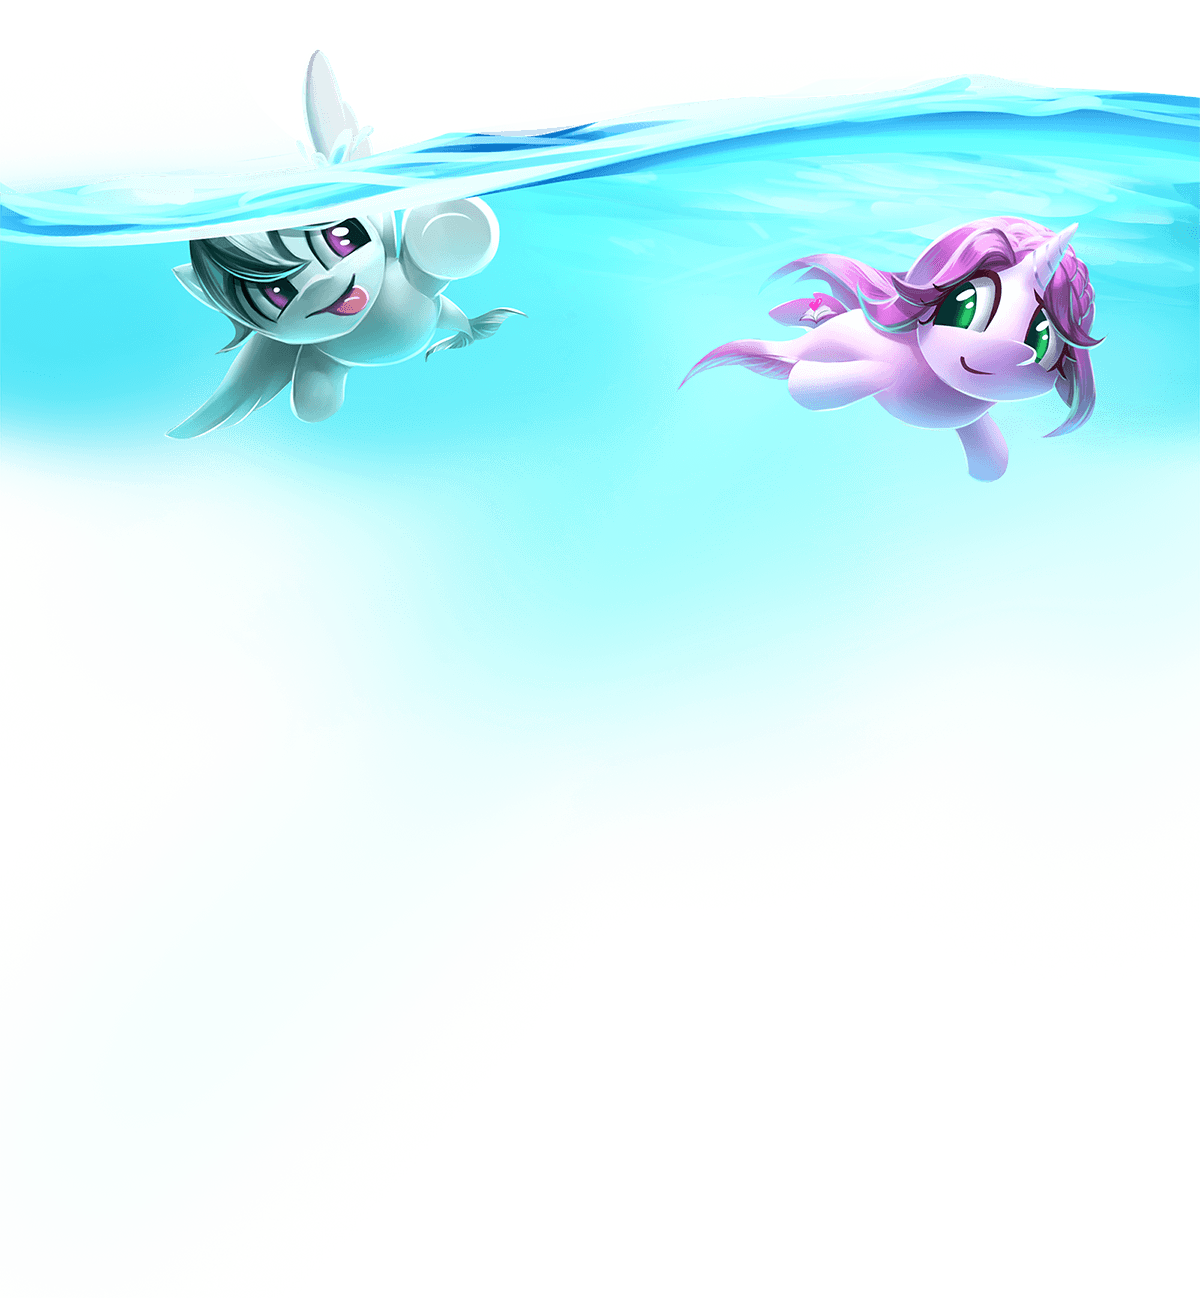 Two of our young mascot ponies, Sharp Focus and Novella, are swimming together beneath the surface of the ocean